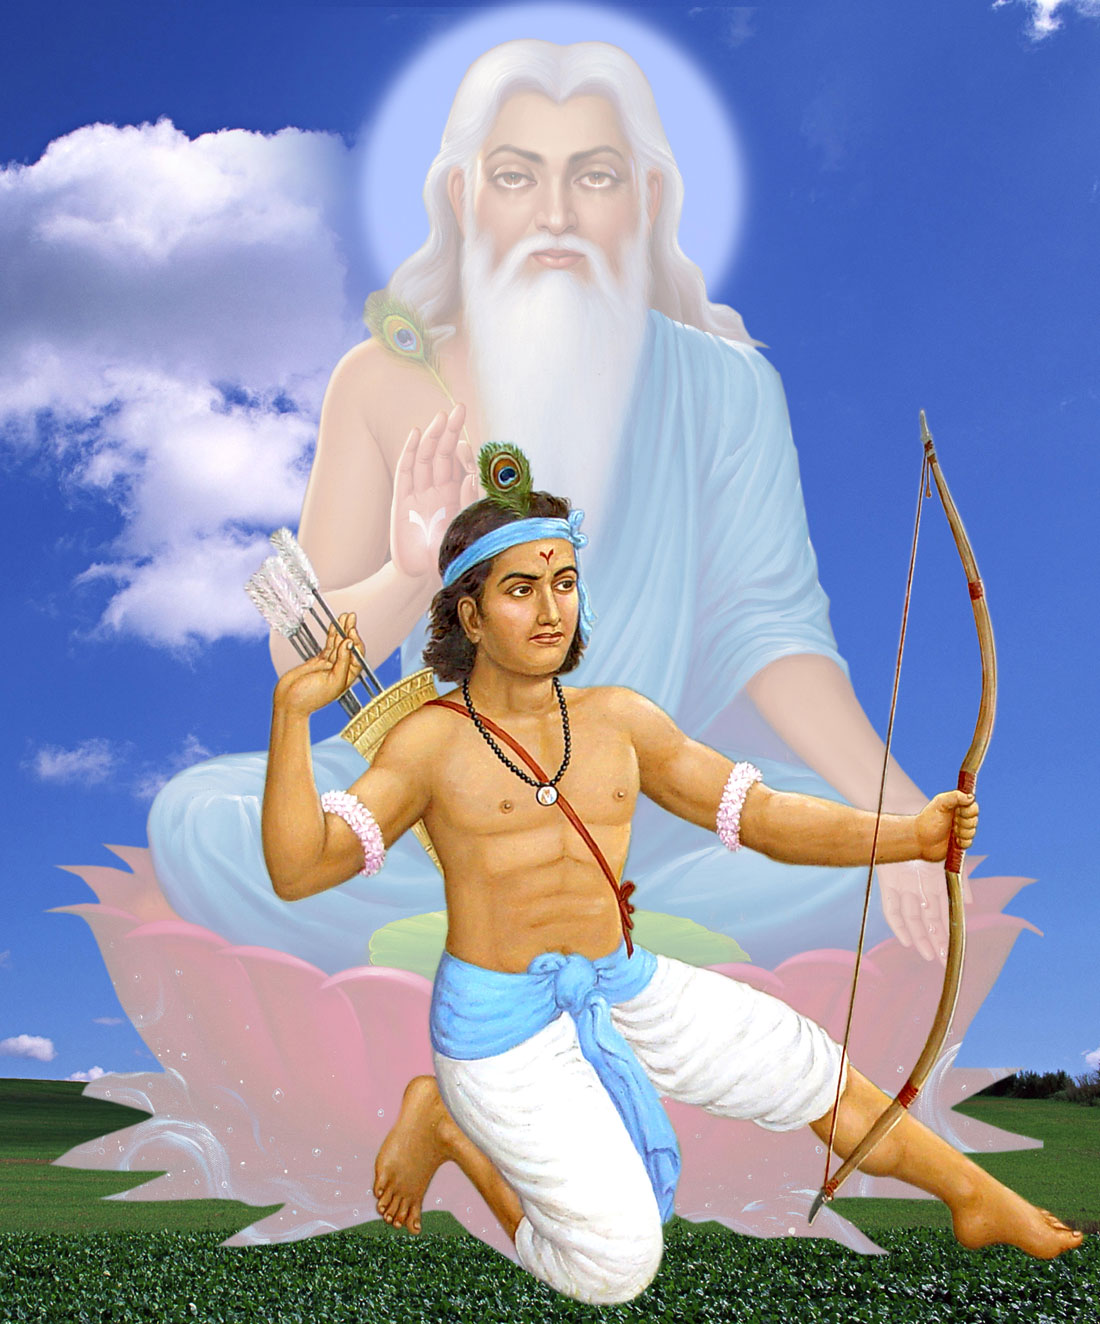 eklavya who donated his thumb to guru drona, from whom he was killed?